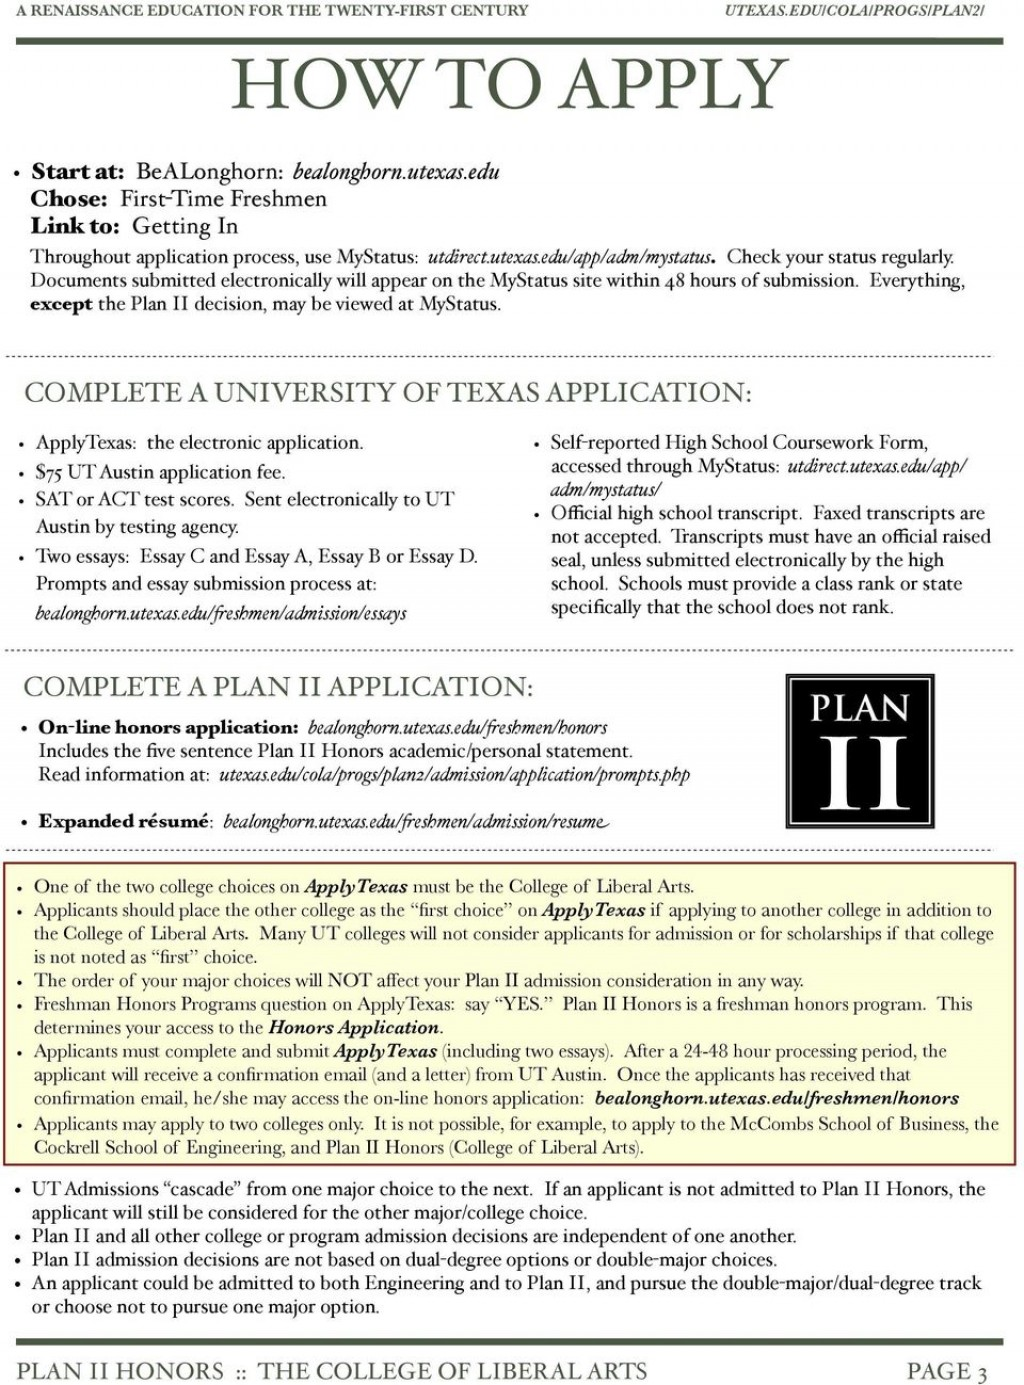 011 Page New Apply Texas Essays Topics Archaicawful Essay Prompts 2018-19 Topic C Examples B Large